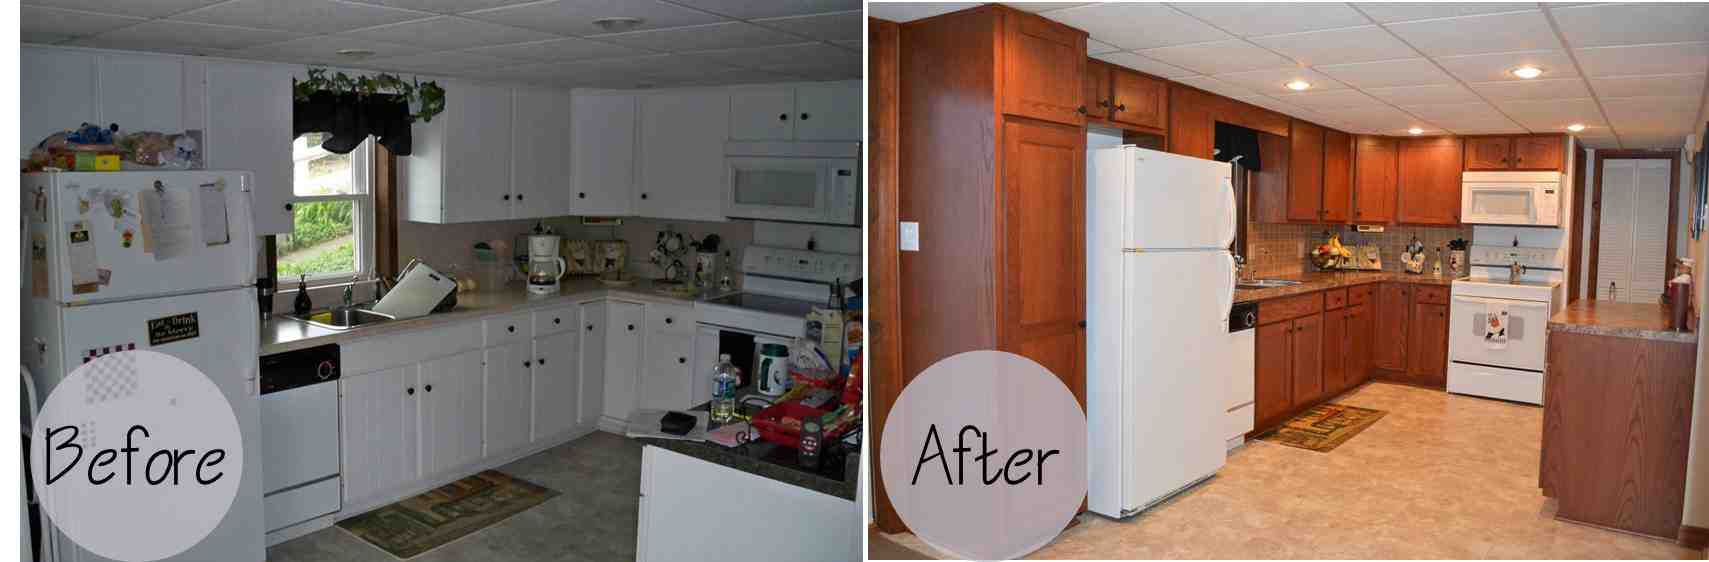 kitchen cabinet refacing before and after photos decor ideasdecor ideas. Black Bedroom Furniture Sets. Home Design Ideas